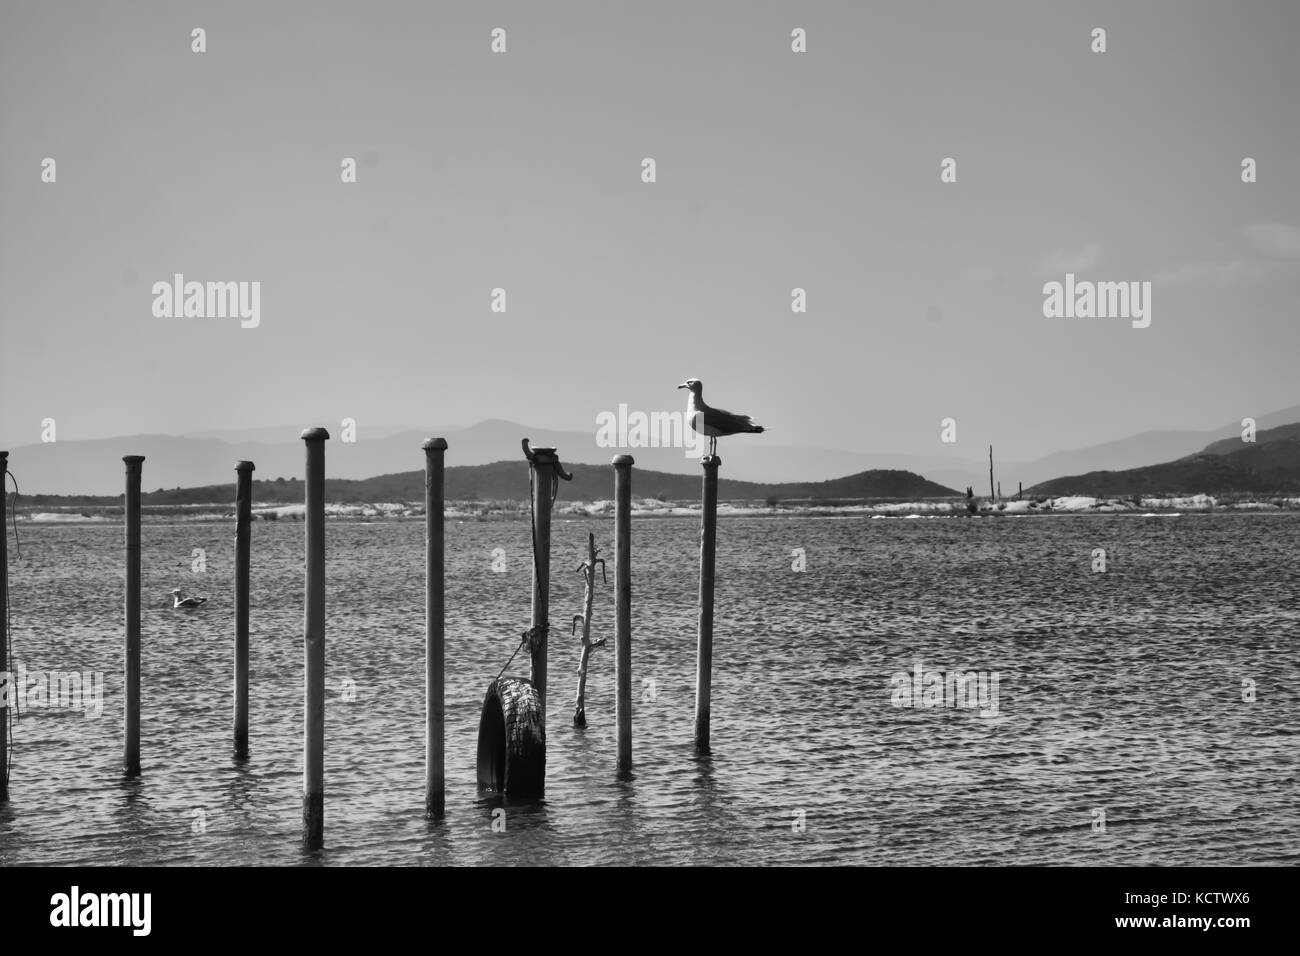 A seagull standing at a poll in Acheloos river mouth in black and white - Stock Image